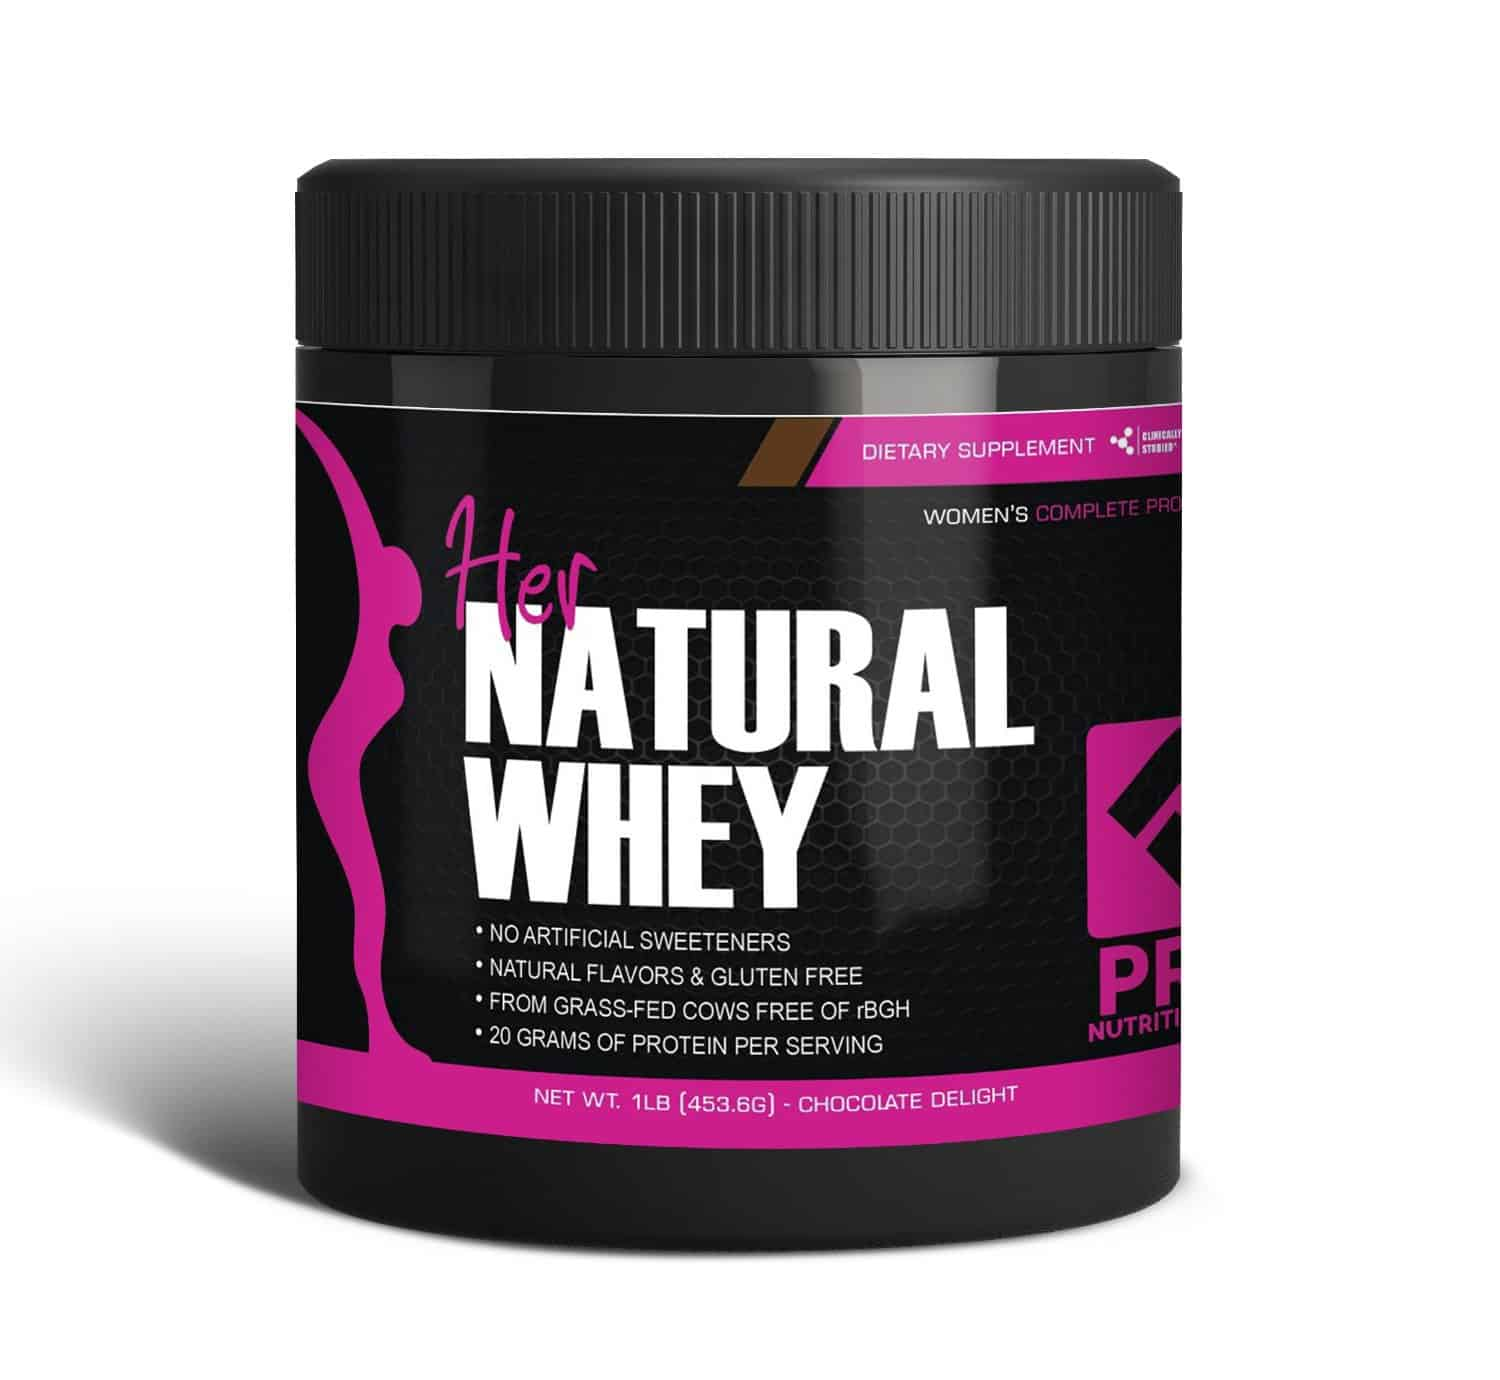 Her Natural Whey Protein Powder